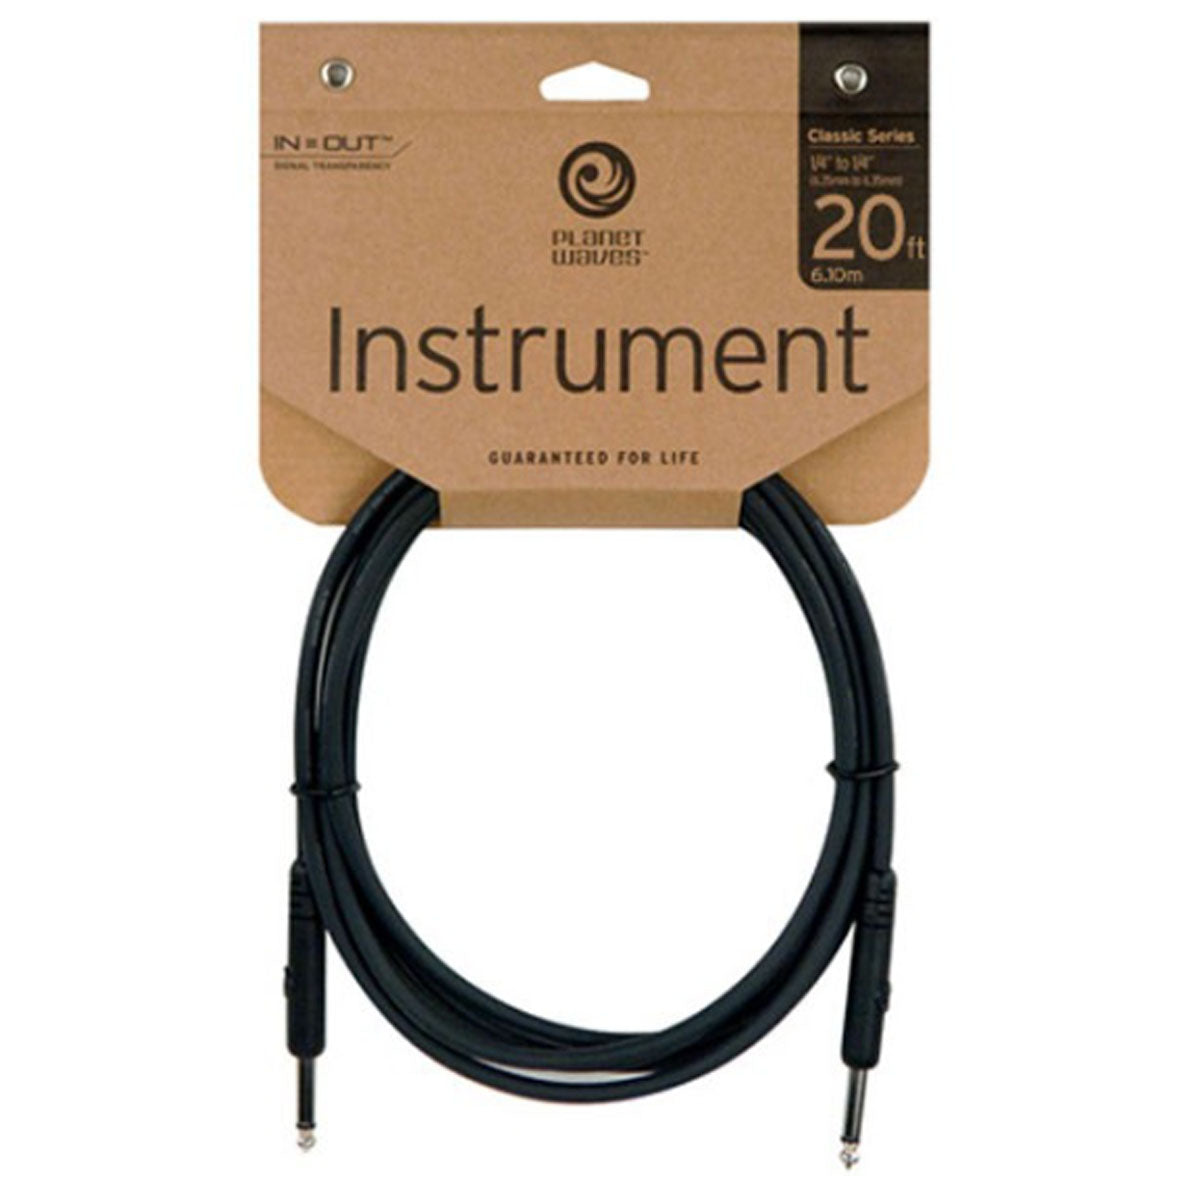 D'Addario Planet Waves Classic Series Guitar Cable 20ft 6.1m Instrument Lead - PW-CGT-20